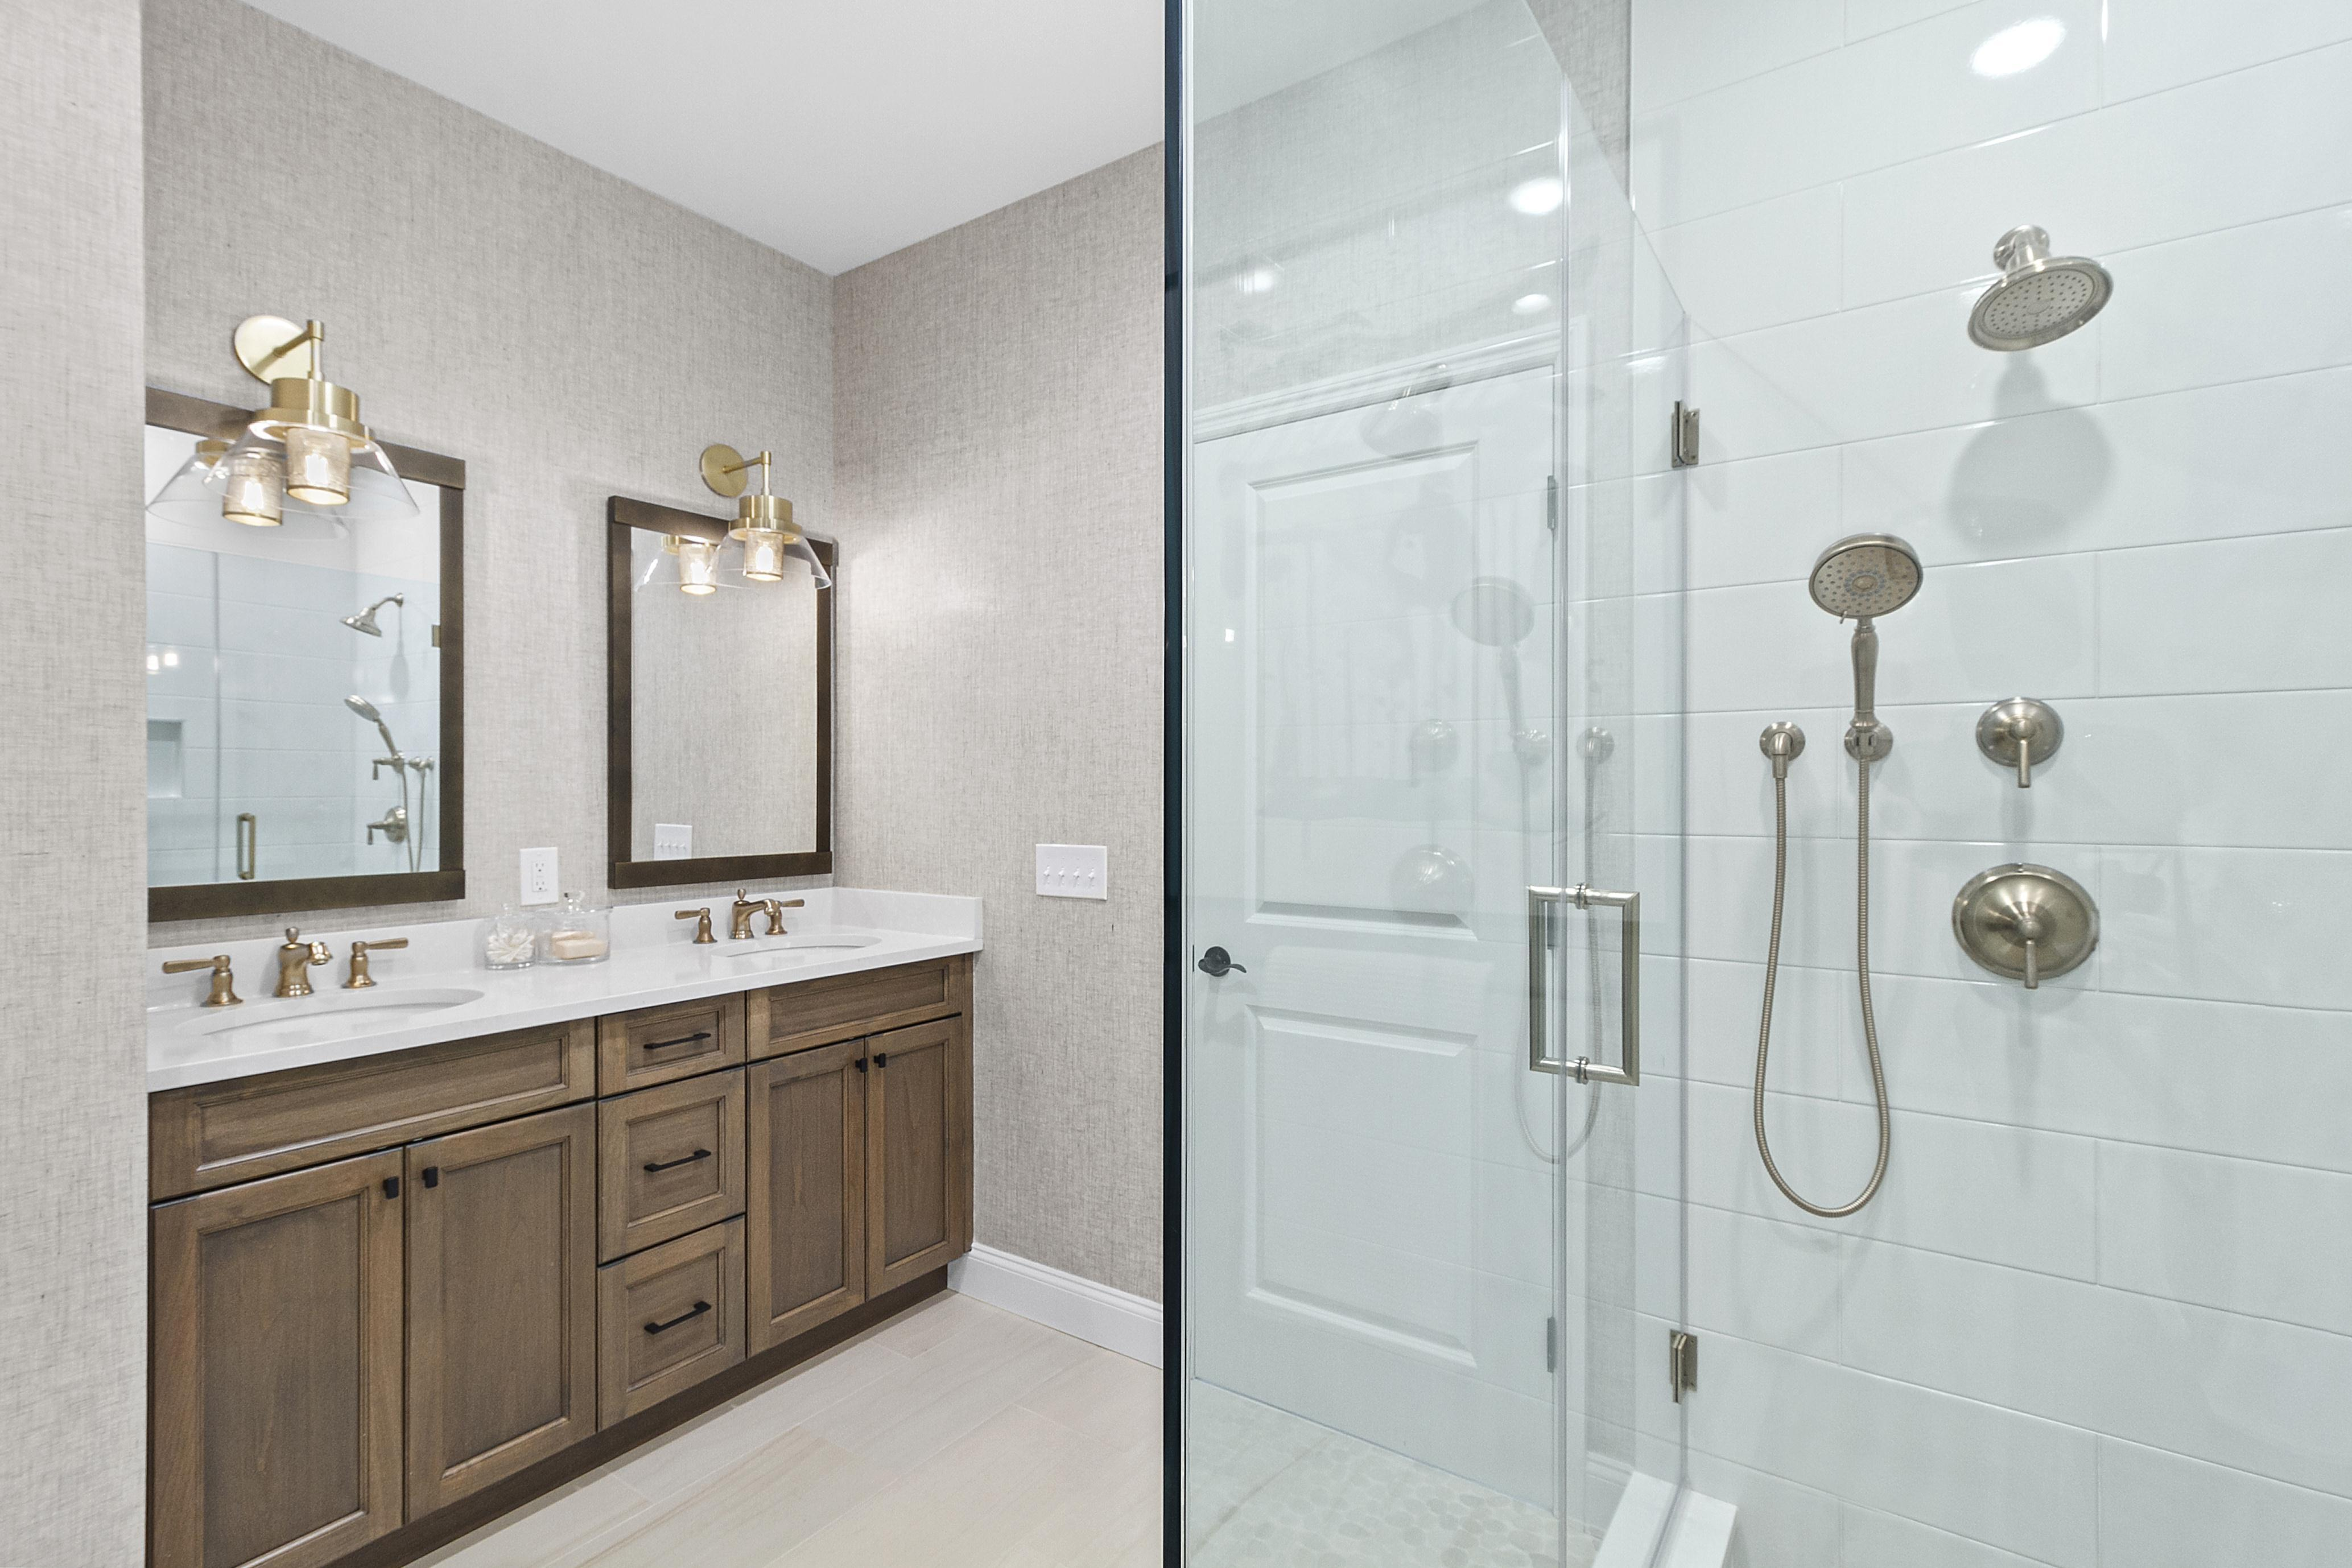 Bathroom featured in The Davenport By Beechwood Homes in Nassau-Suffolk, NY